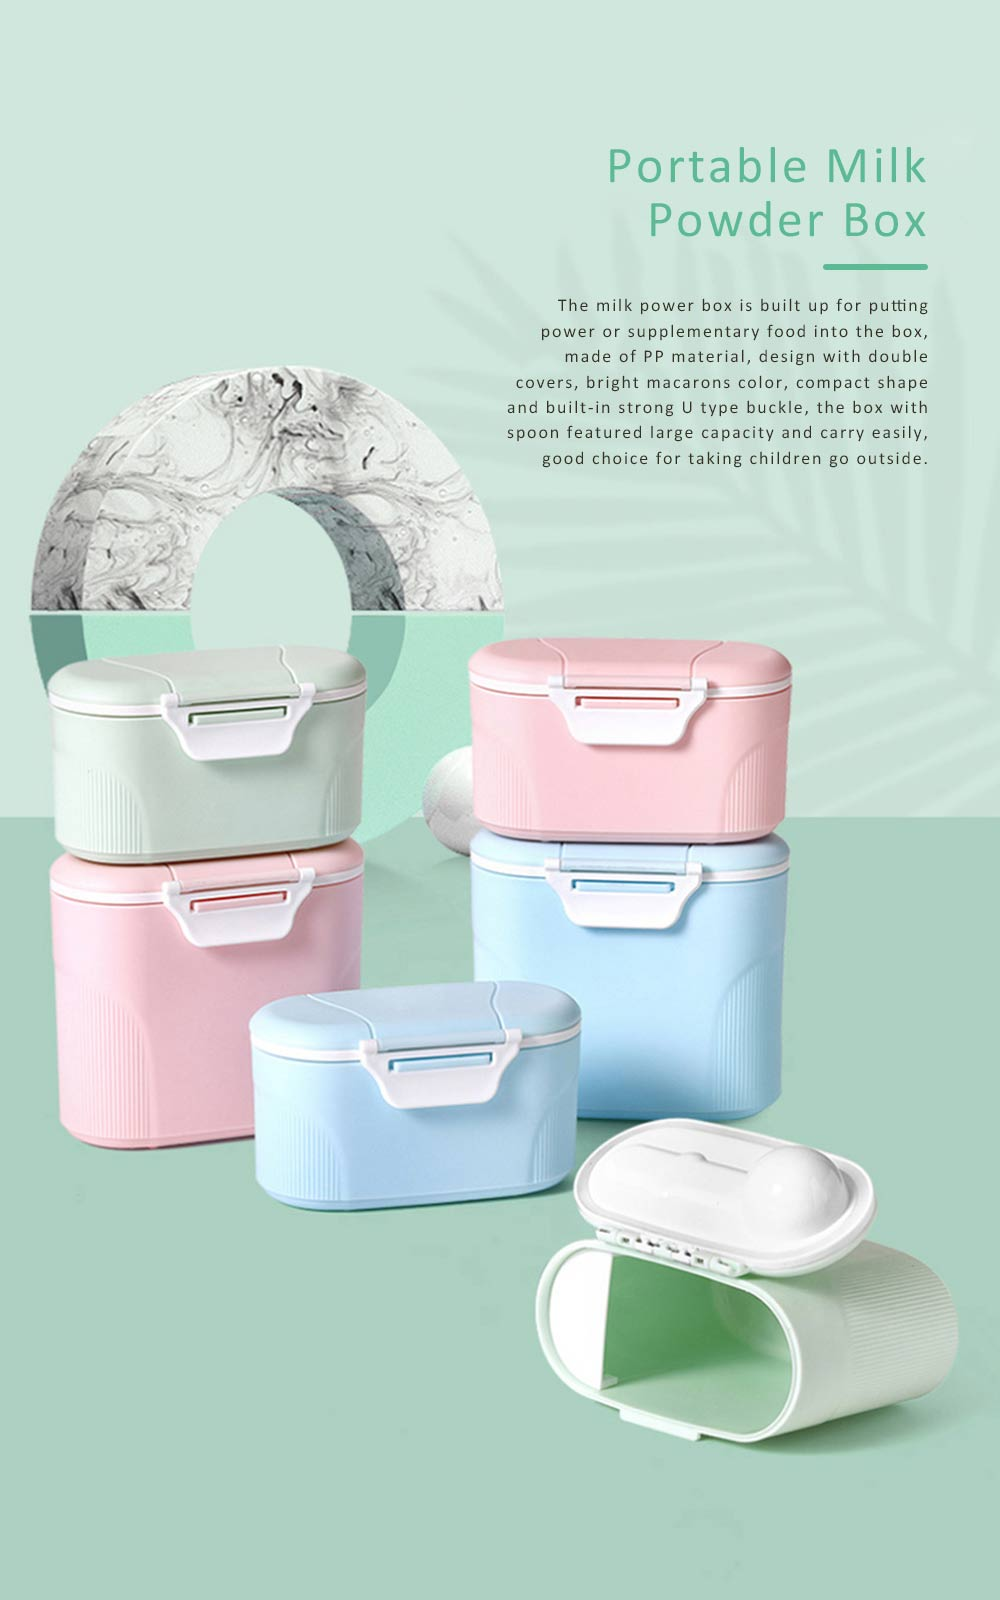 Double Covers Portable Milk Powder Box, Large Capacity Snack Box PP Material Feeding Container Dispenser 0